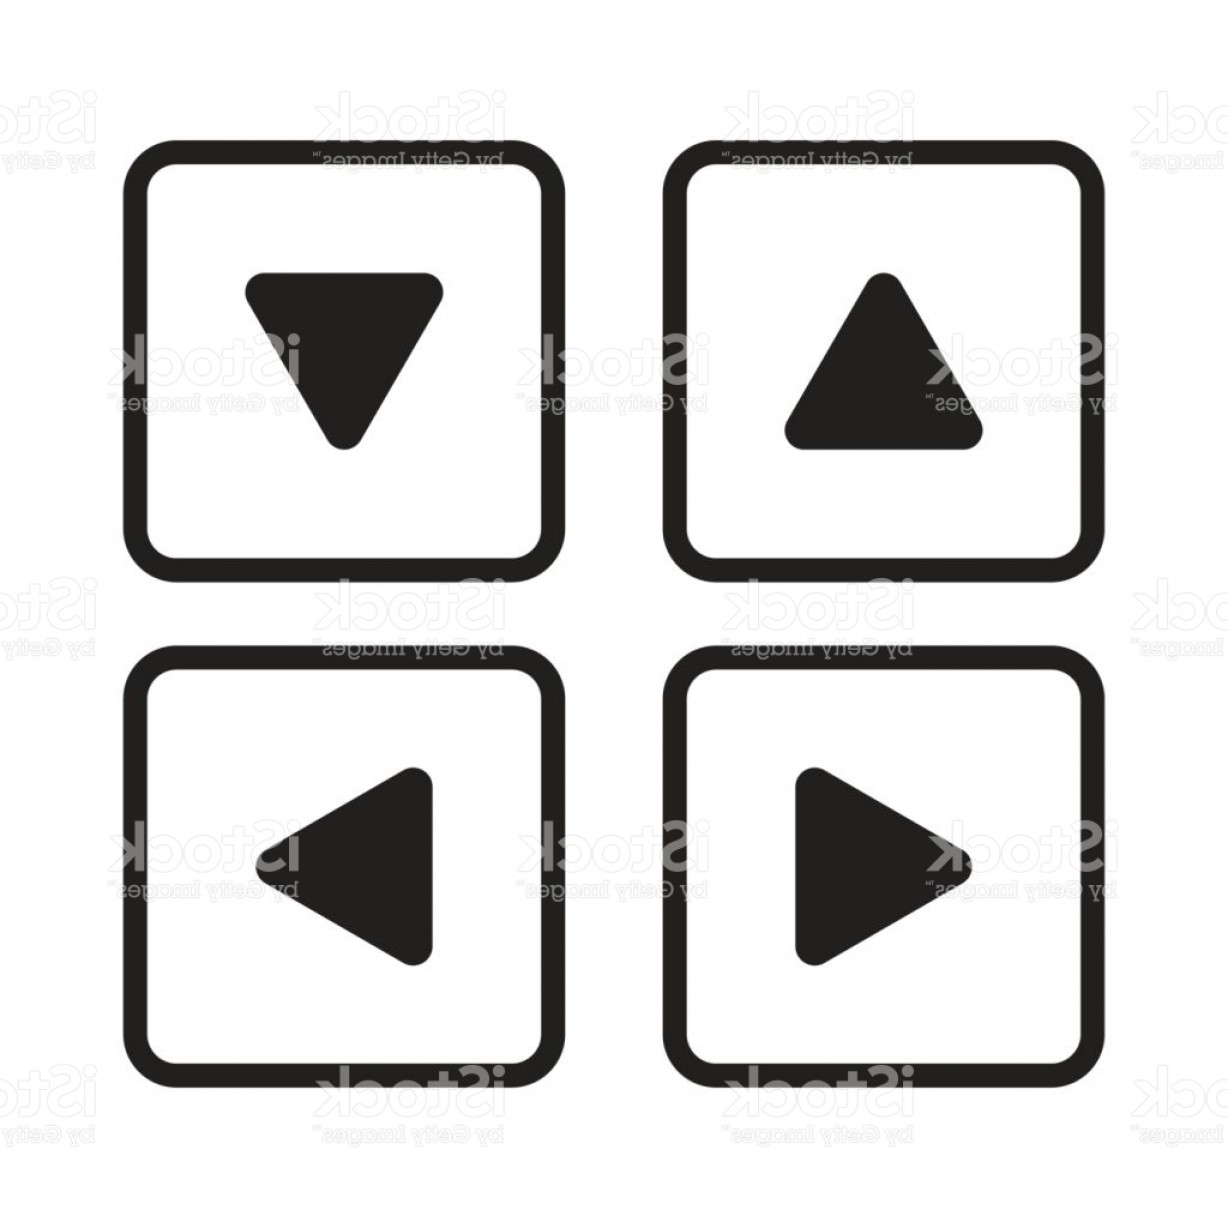 Up And Right Arrows Vector: Up Down Left Right Arrow Button Set Isolated Vector Transparent Gm